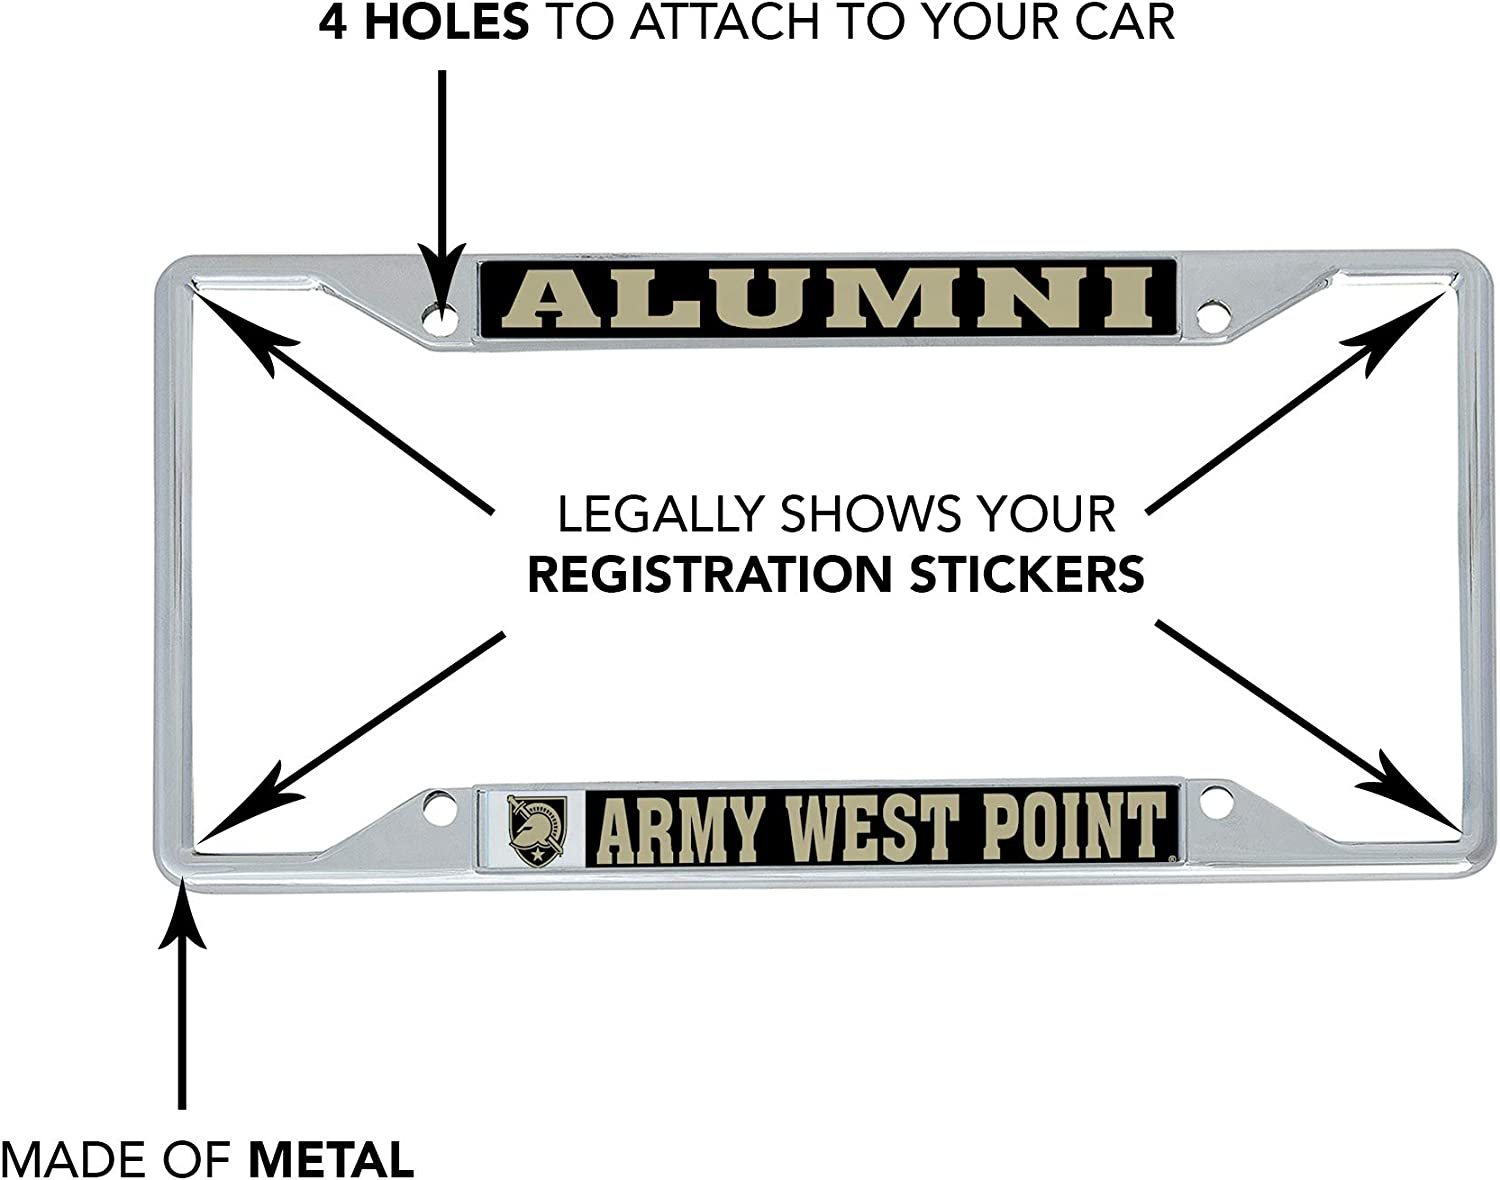 Alumni Desert Cactus United States Military Academy USMA Black Knights NCAA Army West Point Metal License Plate Frame for Front Back of Car Officially Licensed